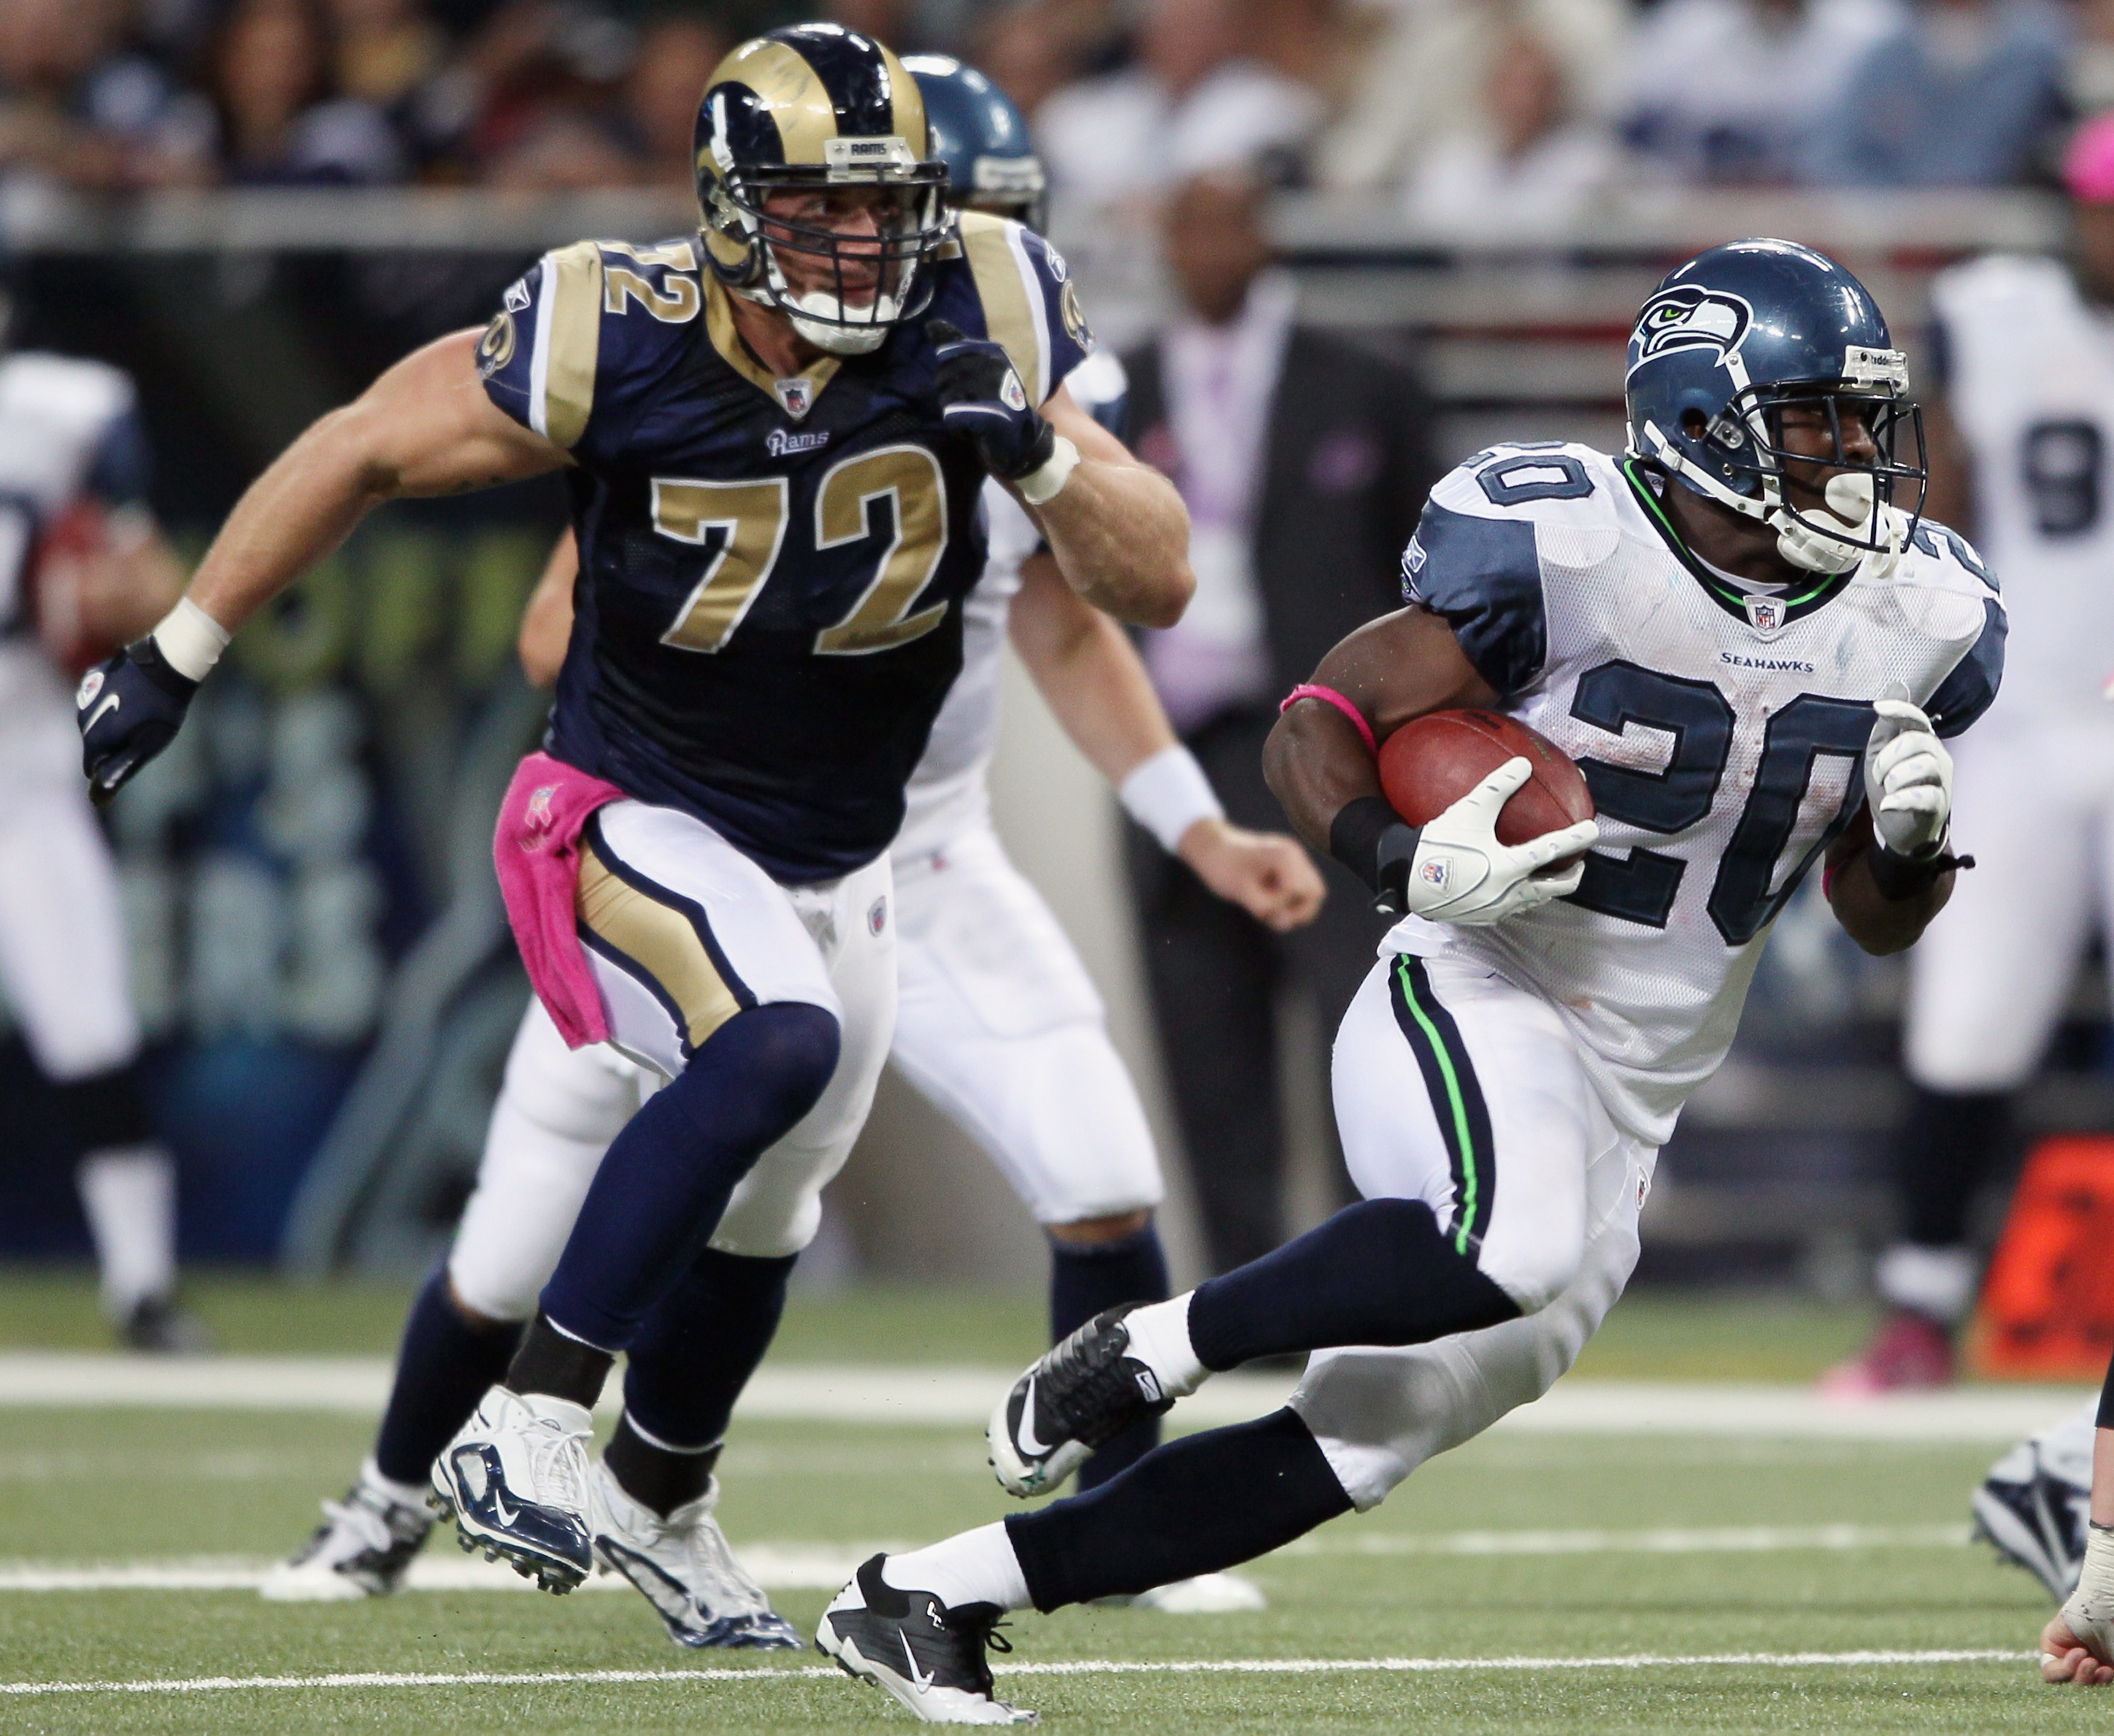 ST. LOUIS - OCTOBER 03:  Justinn Forsett #20 of the Seattle Seahawks carries the ball as Chris Long #72 of the St. Louis Rams defends on October 3, 2010 at Edward Jones Dome in St. Louis, Missouri.  (Photo by Elsa/Getty Images)